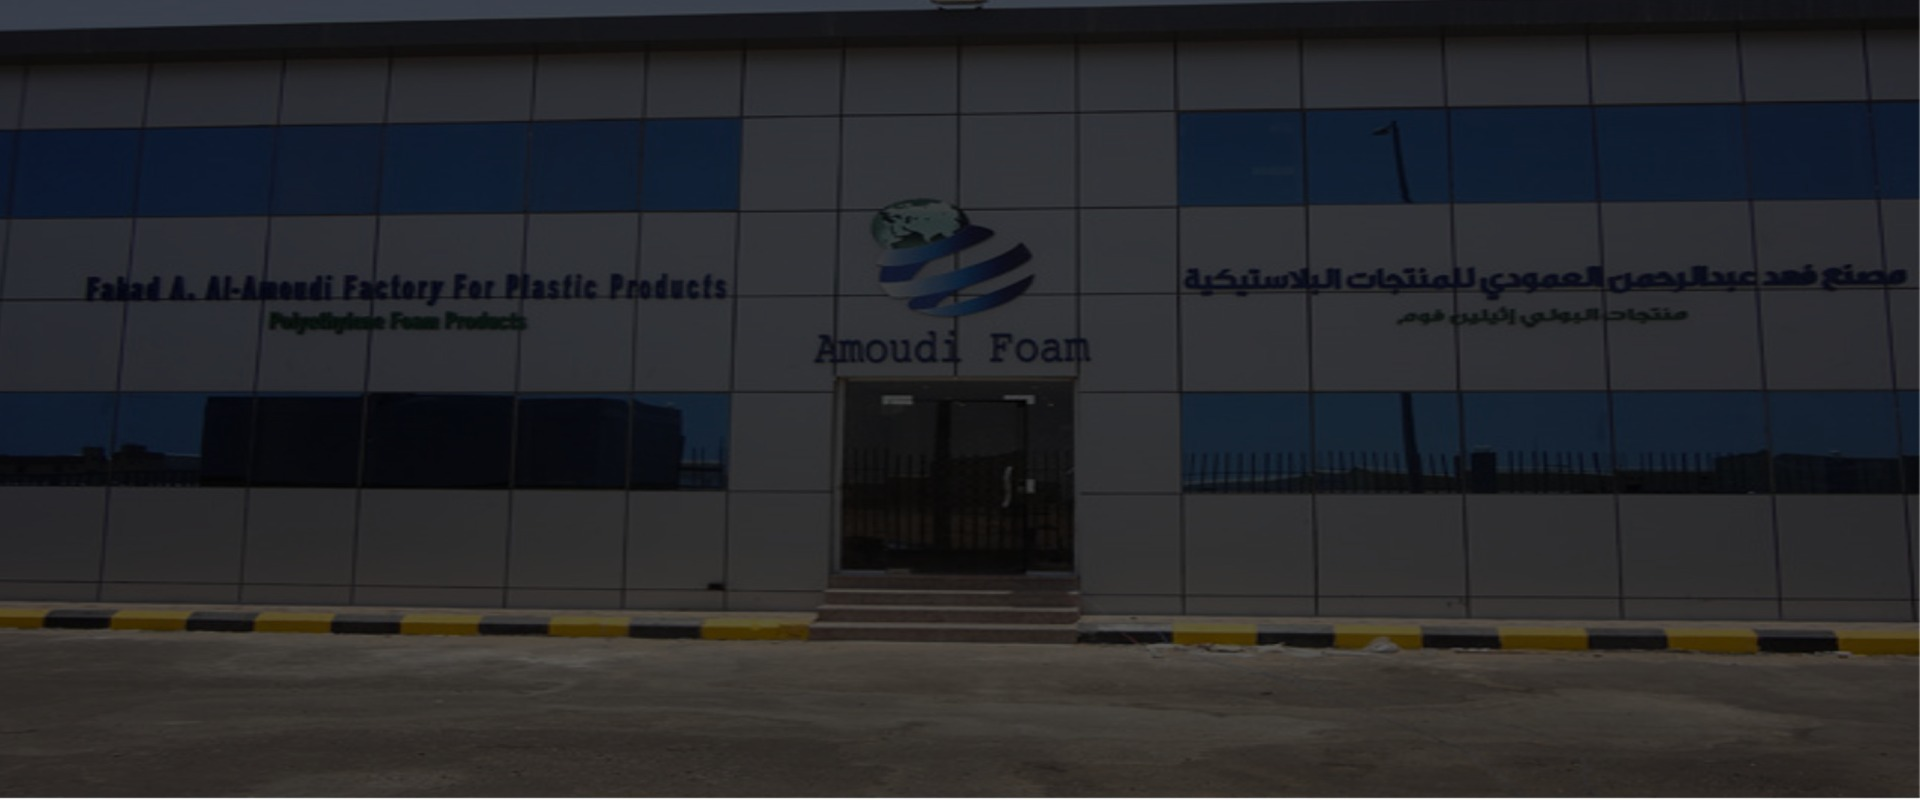 Amoudi Foam – Factory for Plastic Products in Jeddah – Fahad